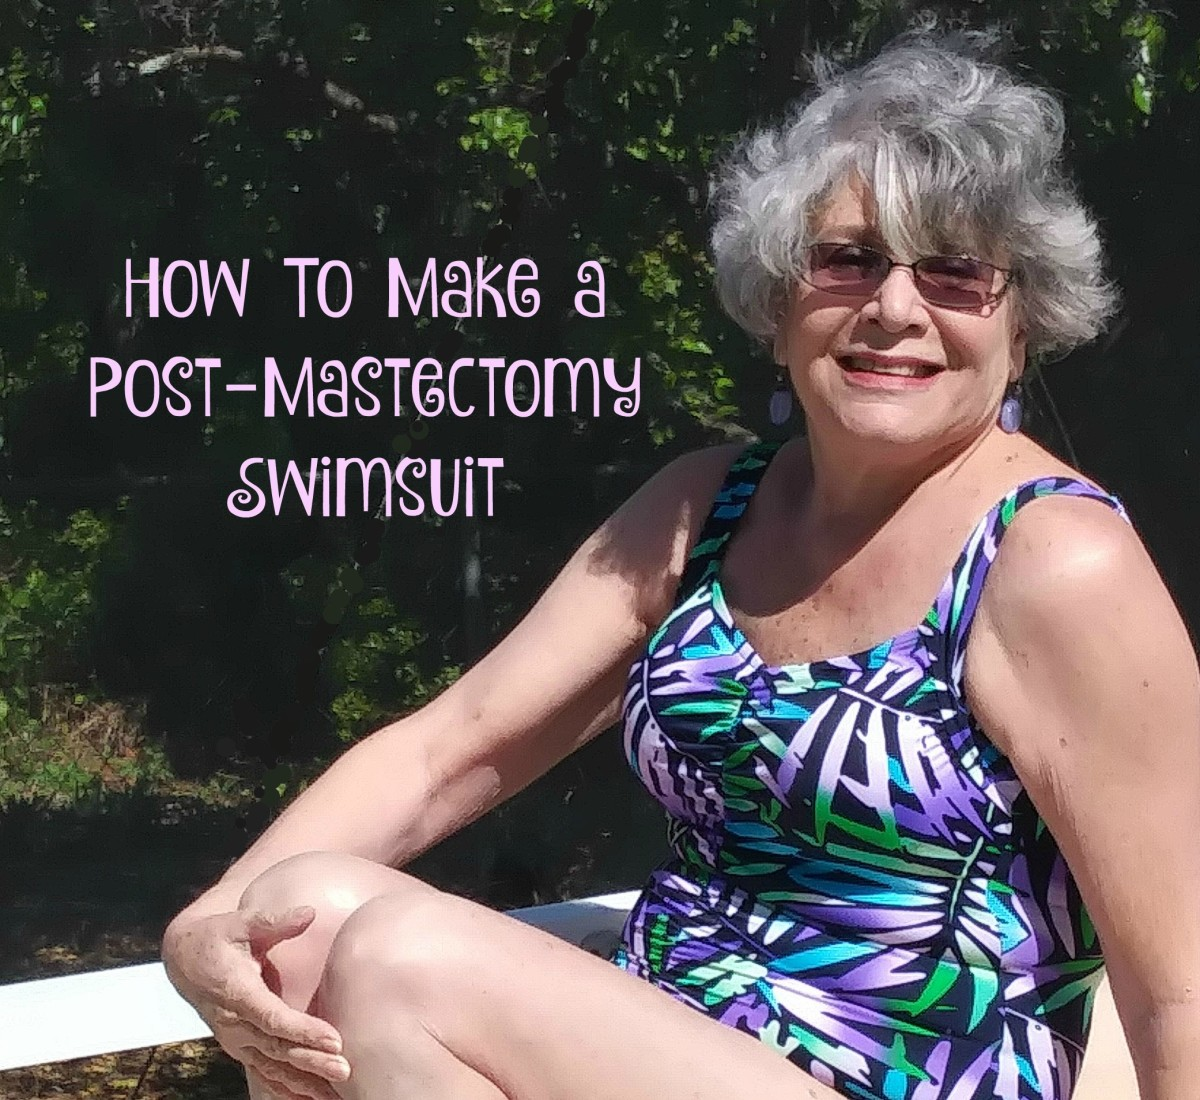 The author poses in her post-mastectomy swimsuit. She modified a swimsuit she already owned.